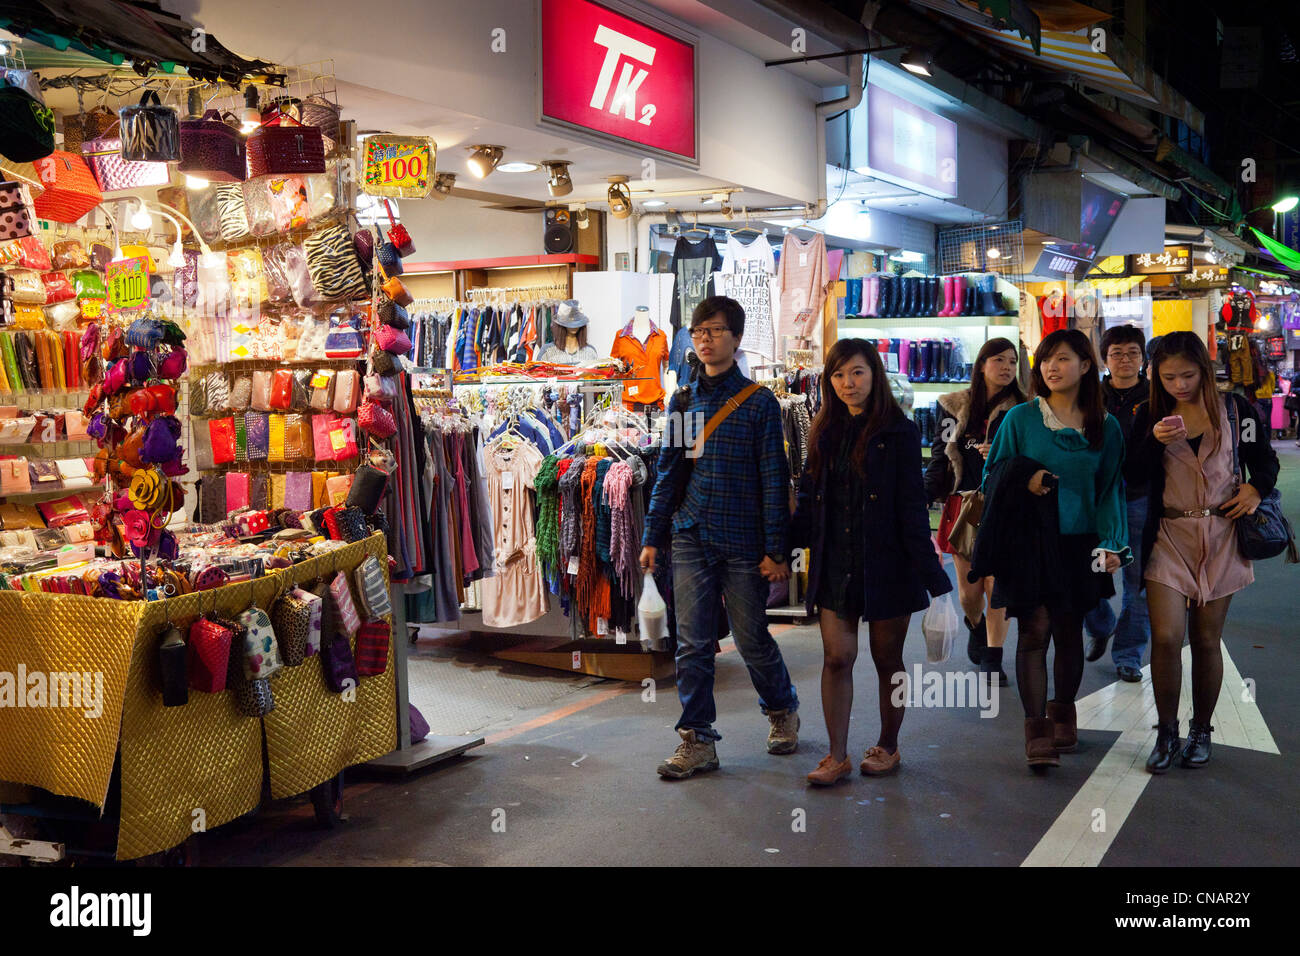 Shoppers and stalls in Shilin Night Market Taipei Taiwan. JMH5997 - Stock Image